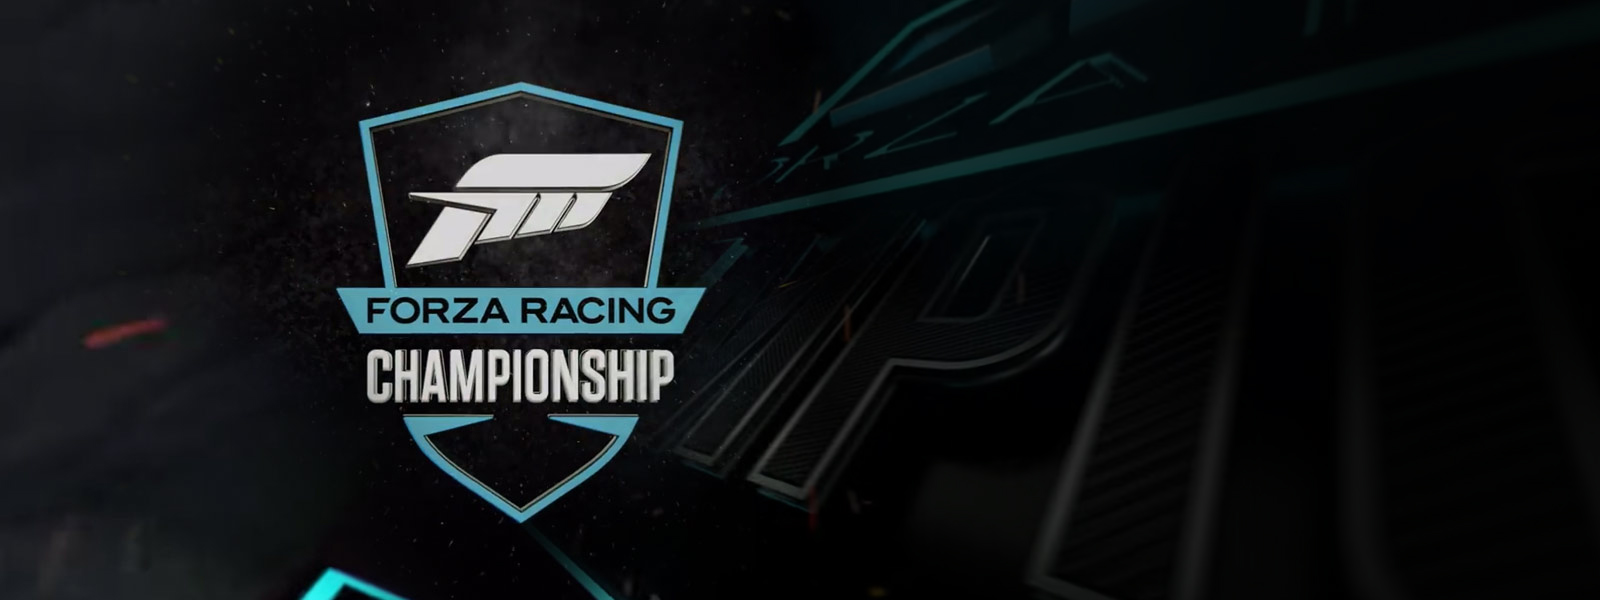 Forza Racing Championship, Close up view of textured racing championship logo